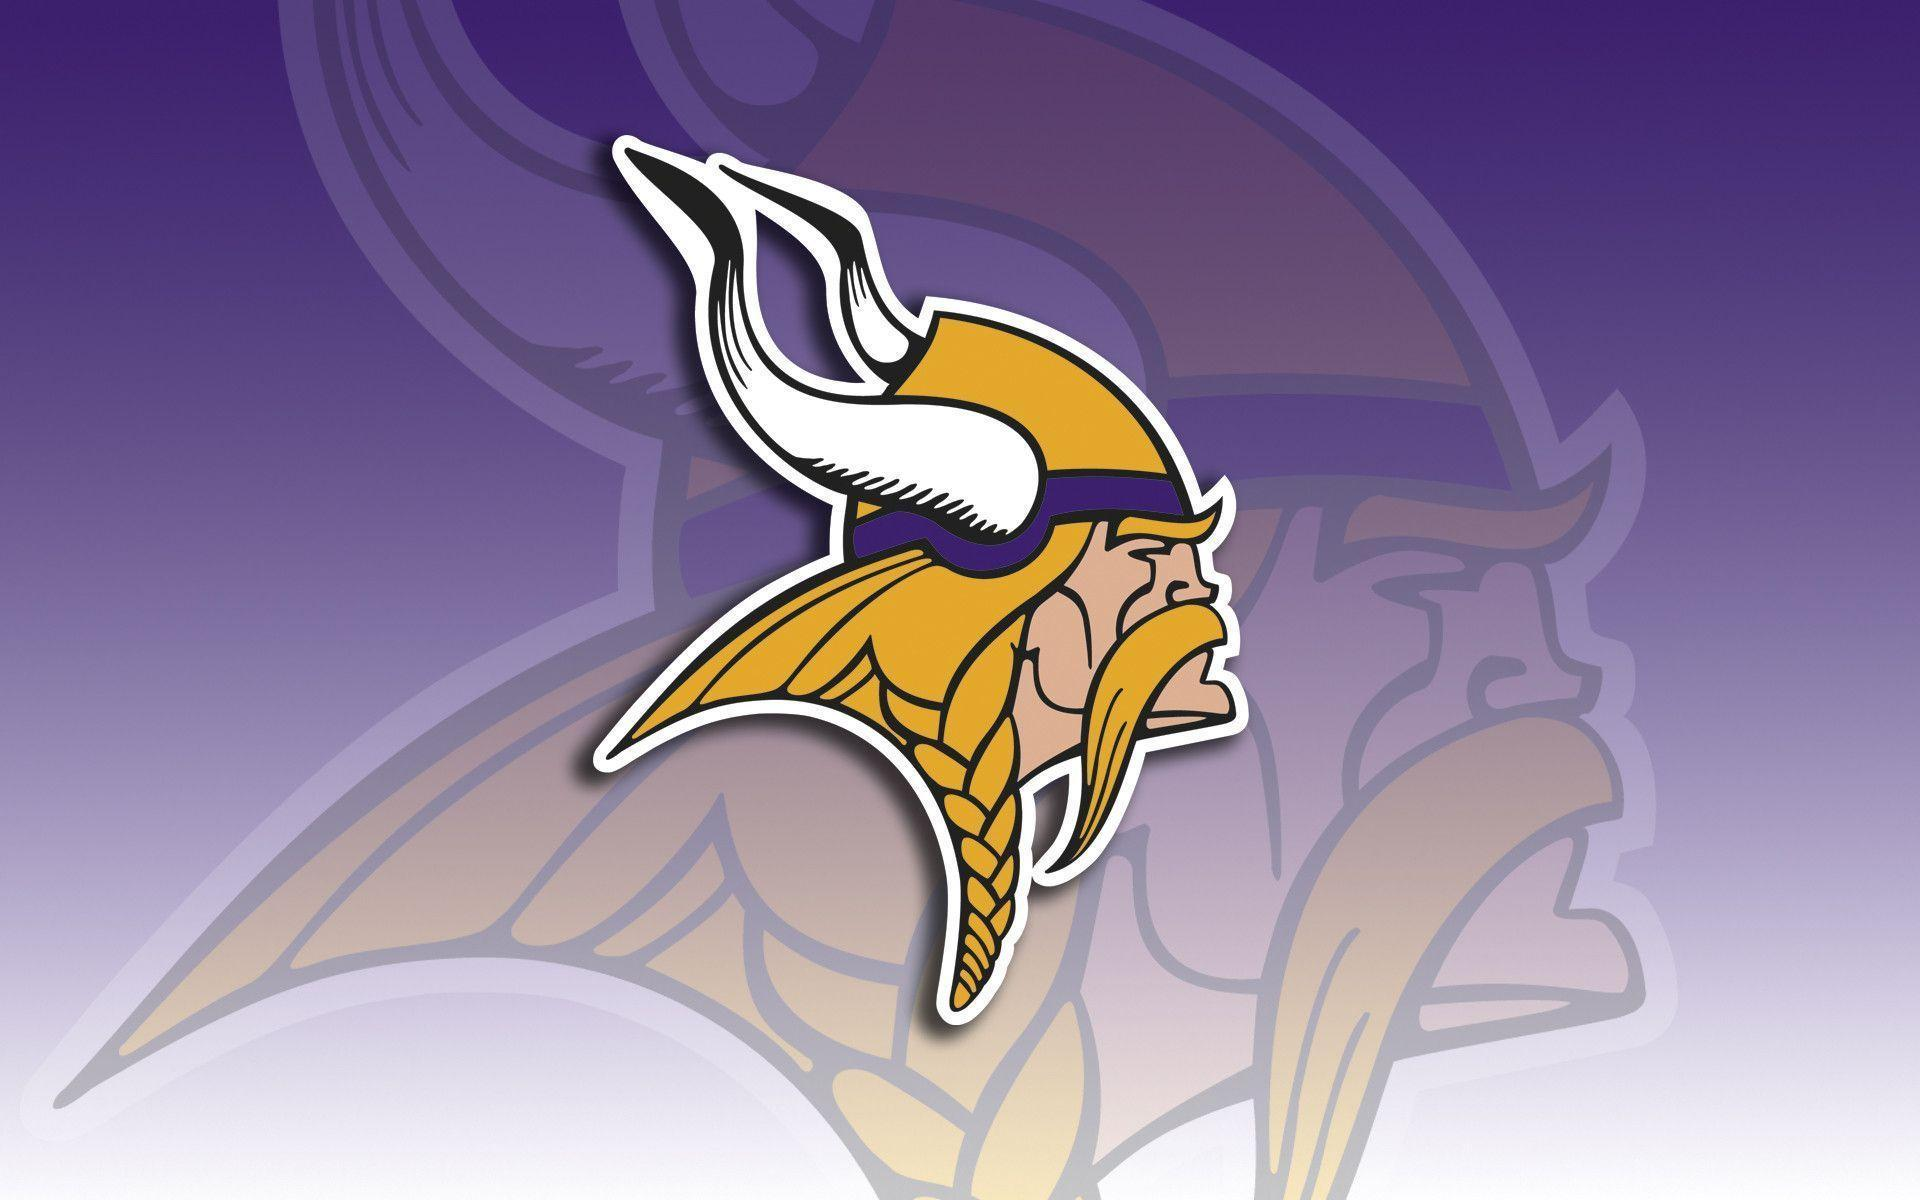 Minnesota Vikings #8818868